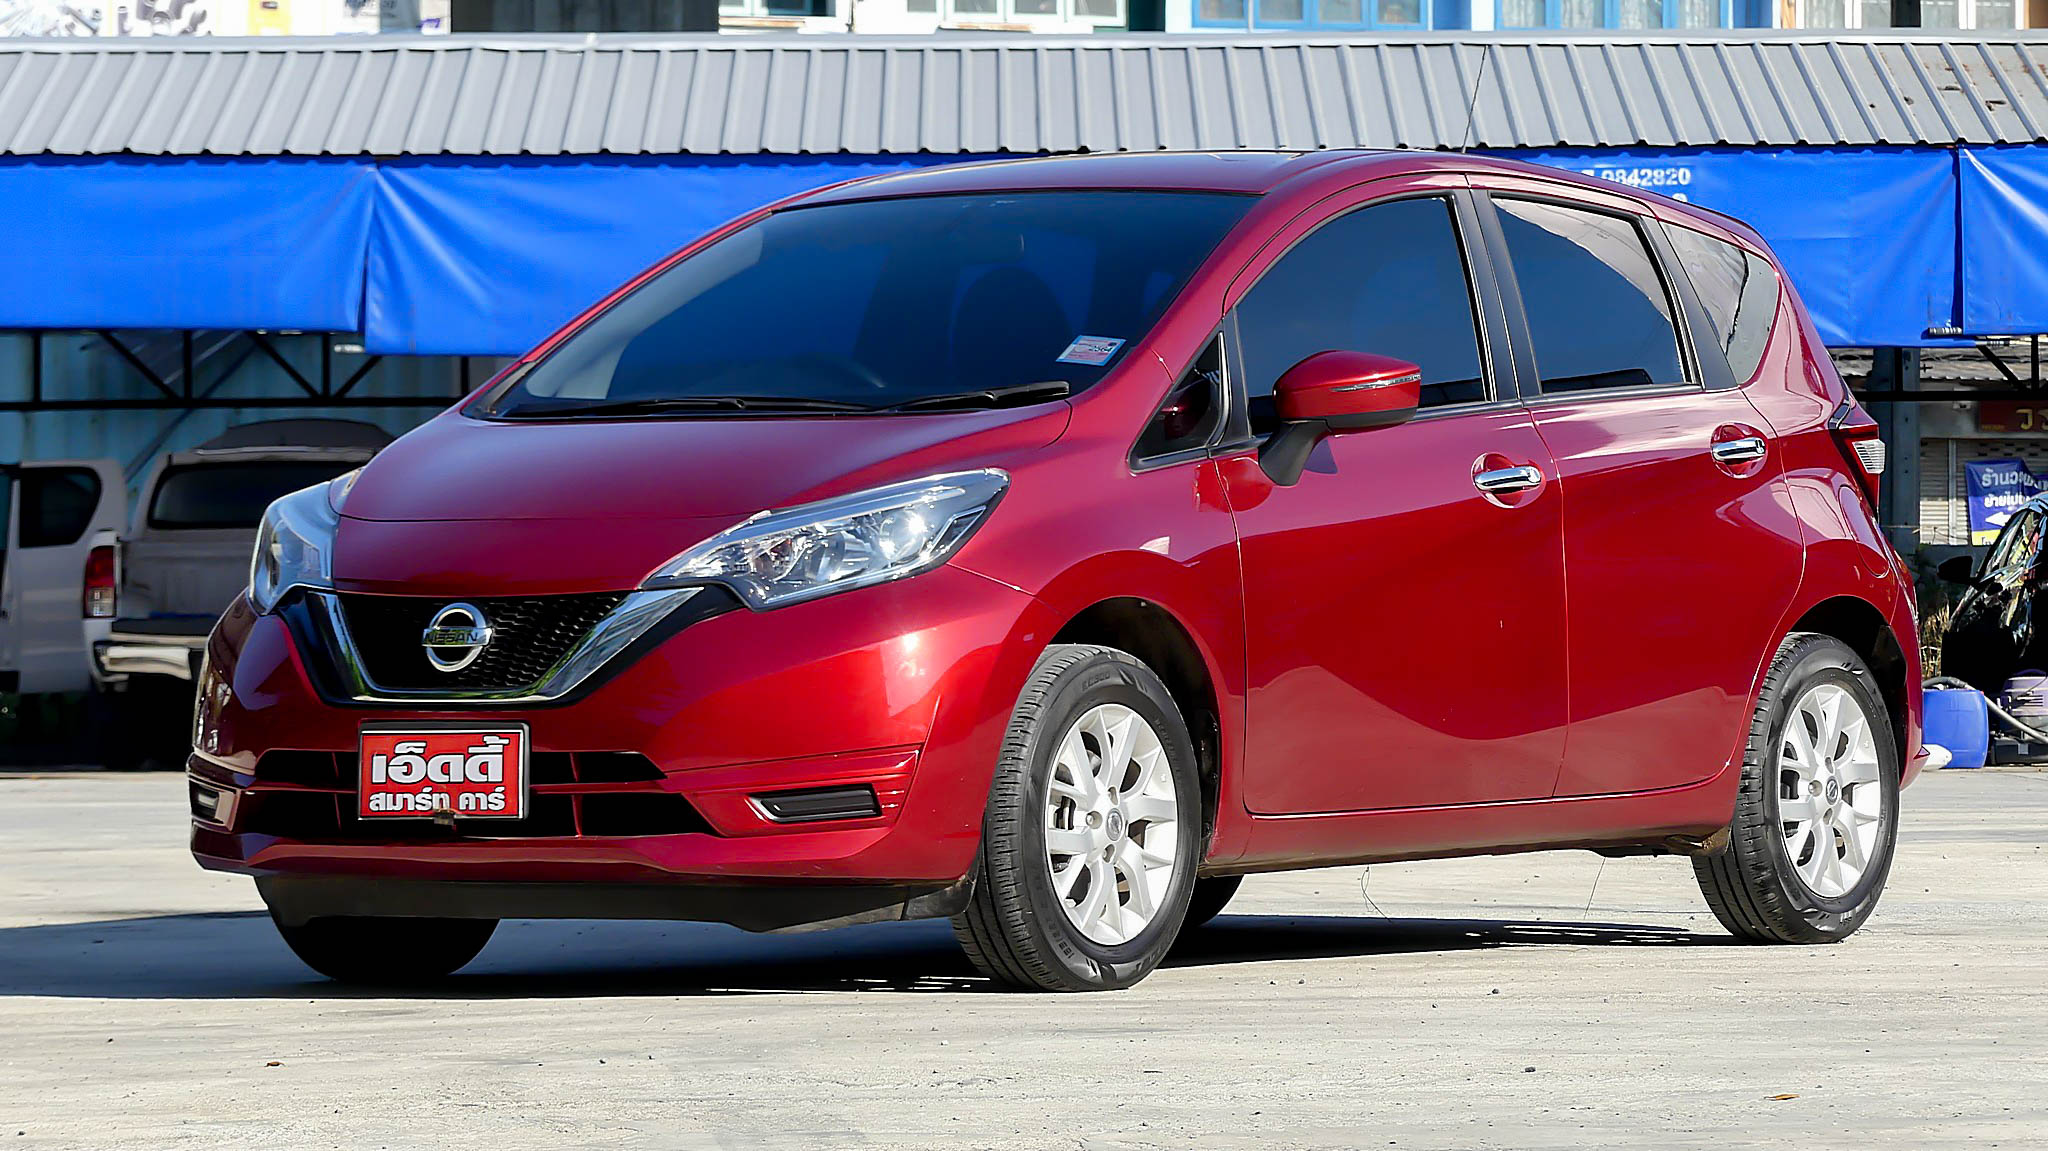 Nissan Note 1.2 V / AT ปี 2019